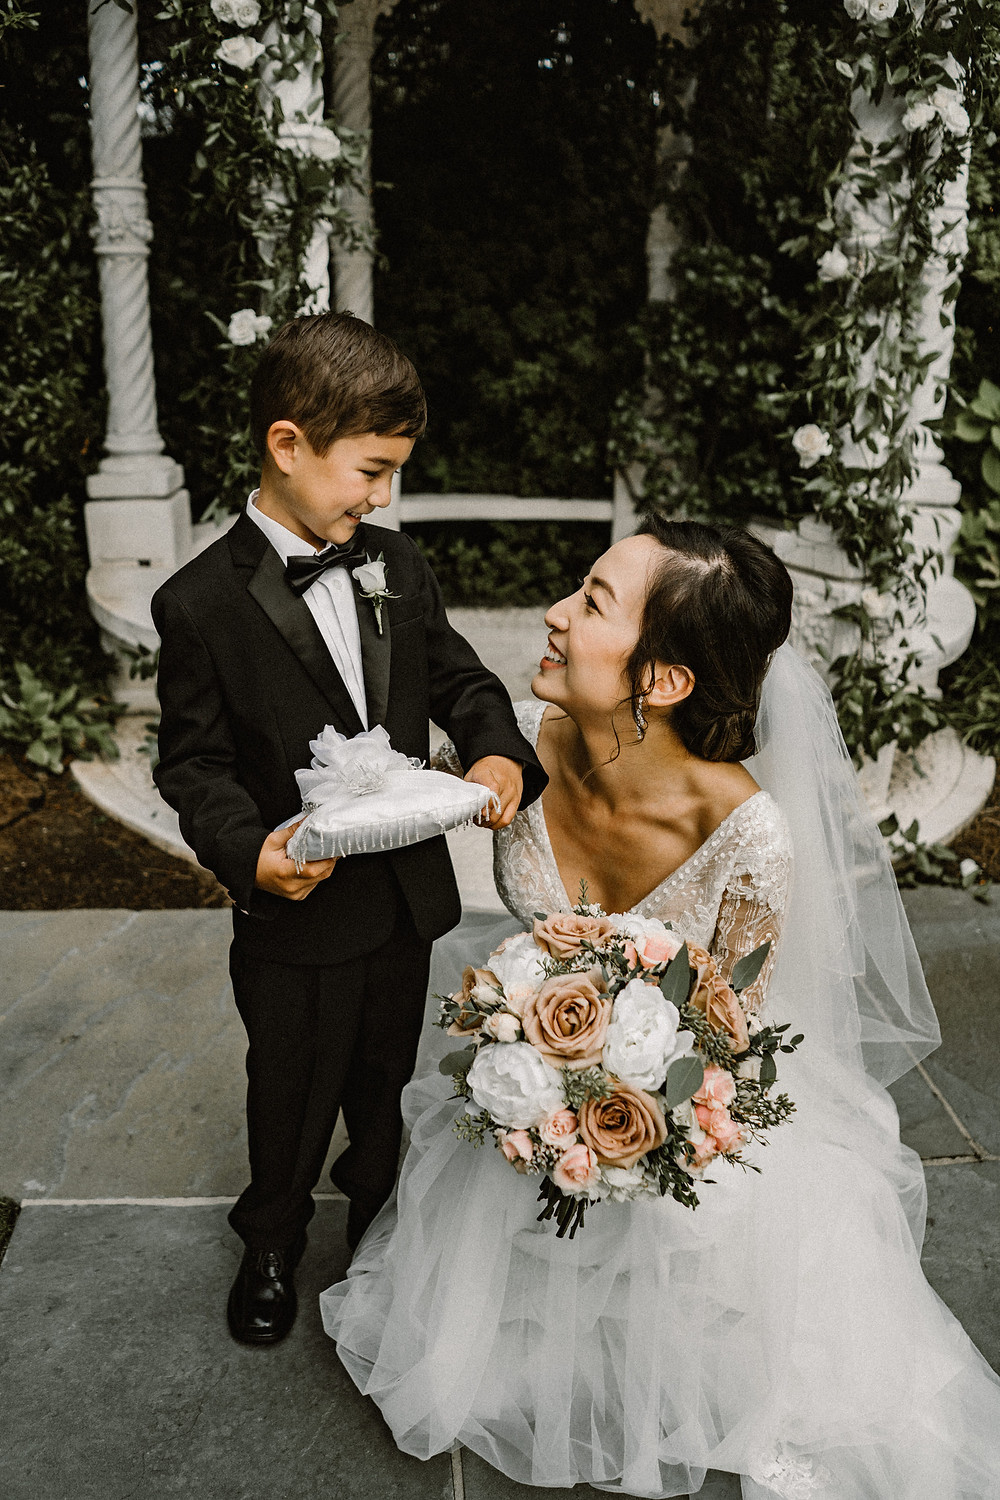 Bride and her ring bearer